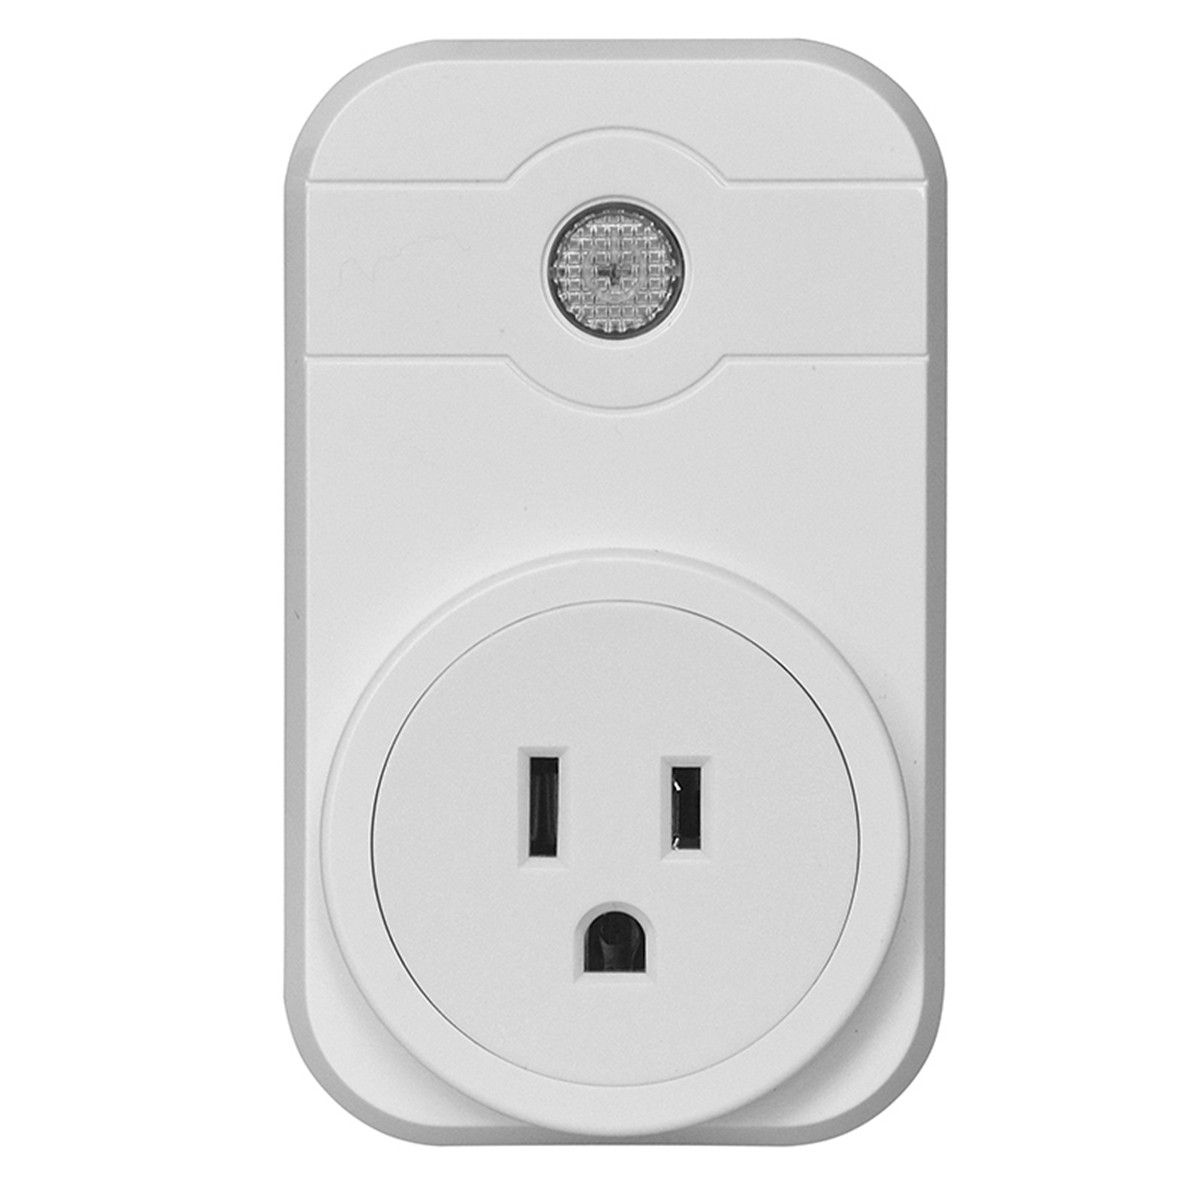 Wireless Smart Wifi Socket Plug Outlet Work for Alexa Echo For Google Home Remote Control Wireless